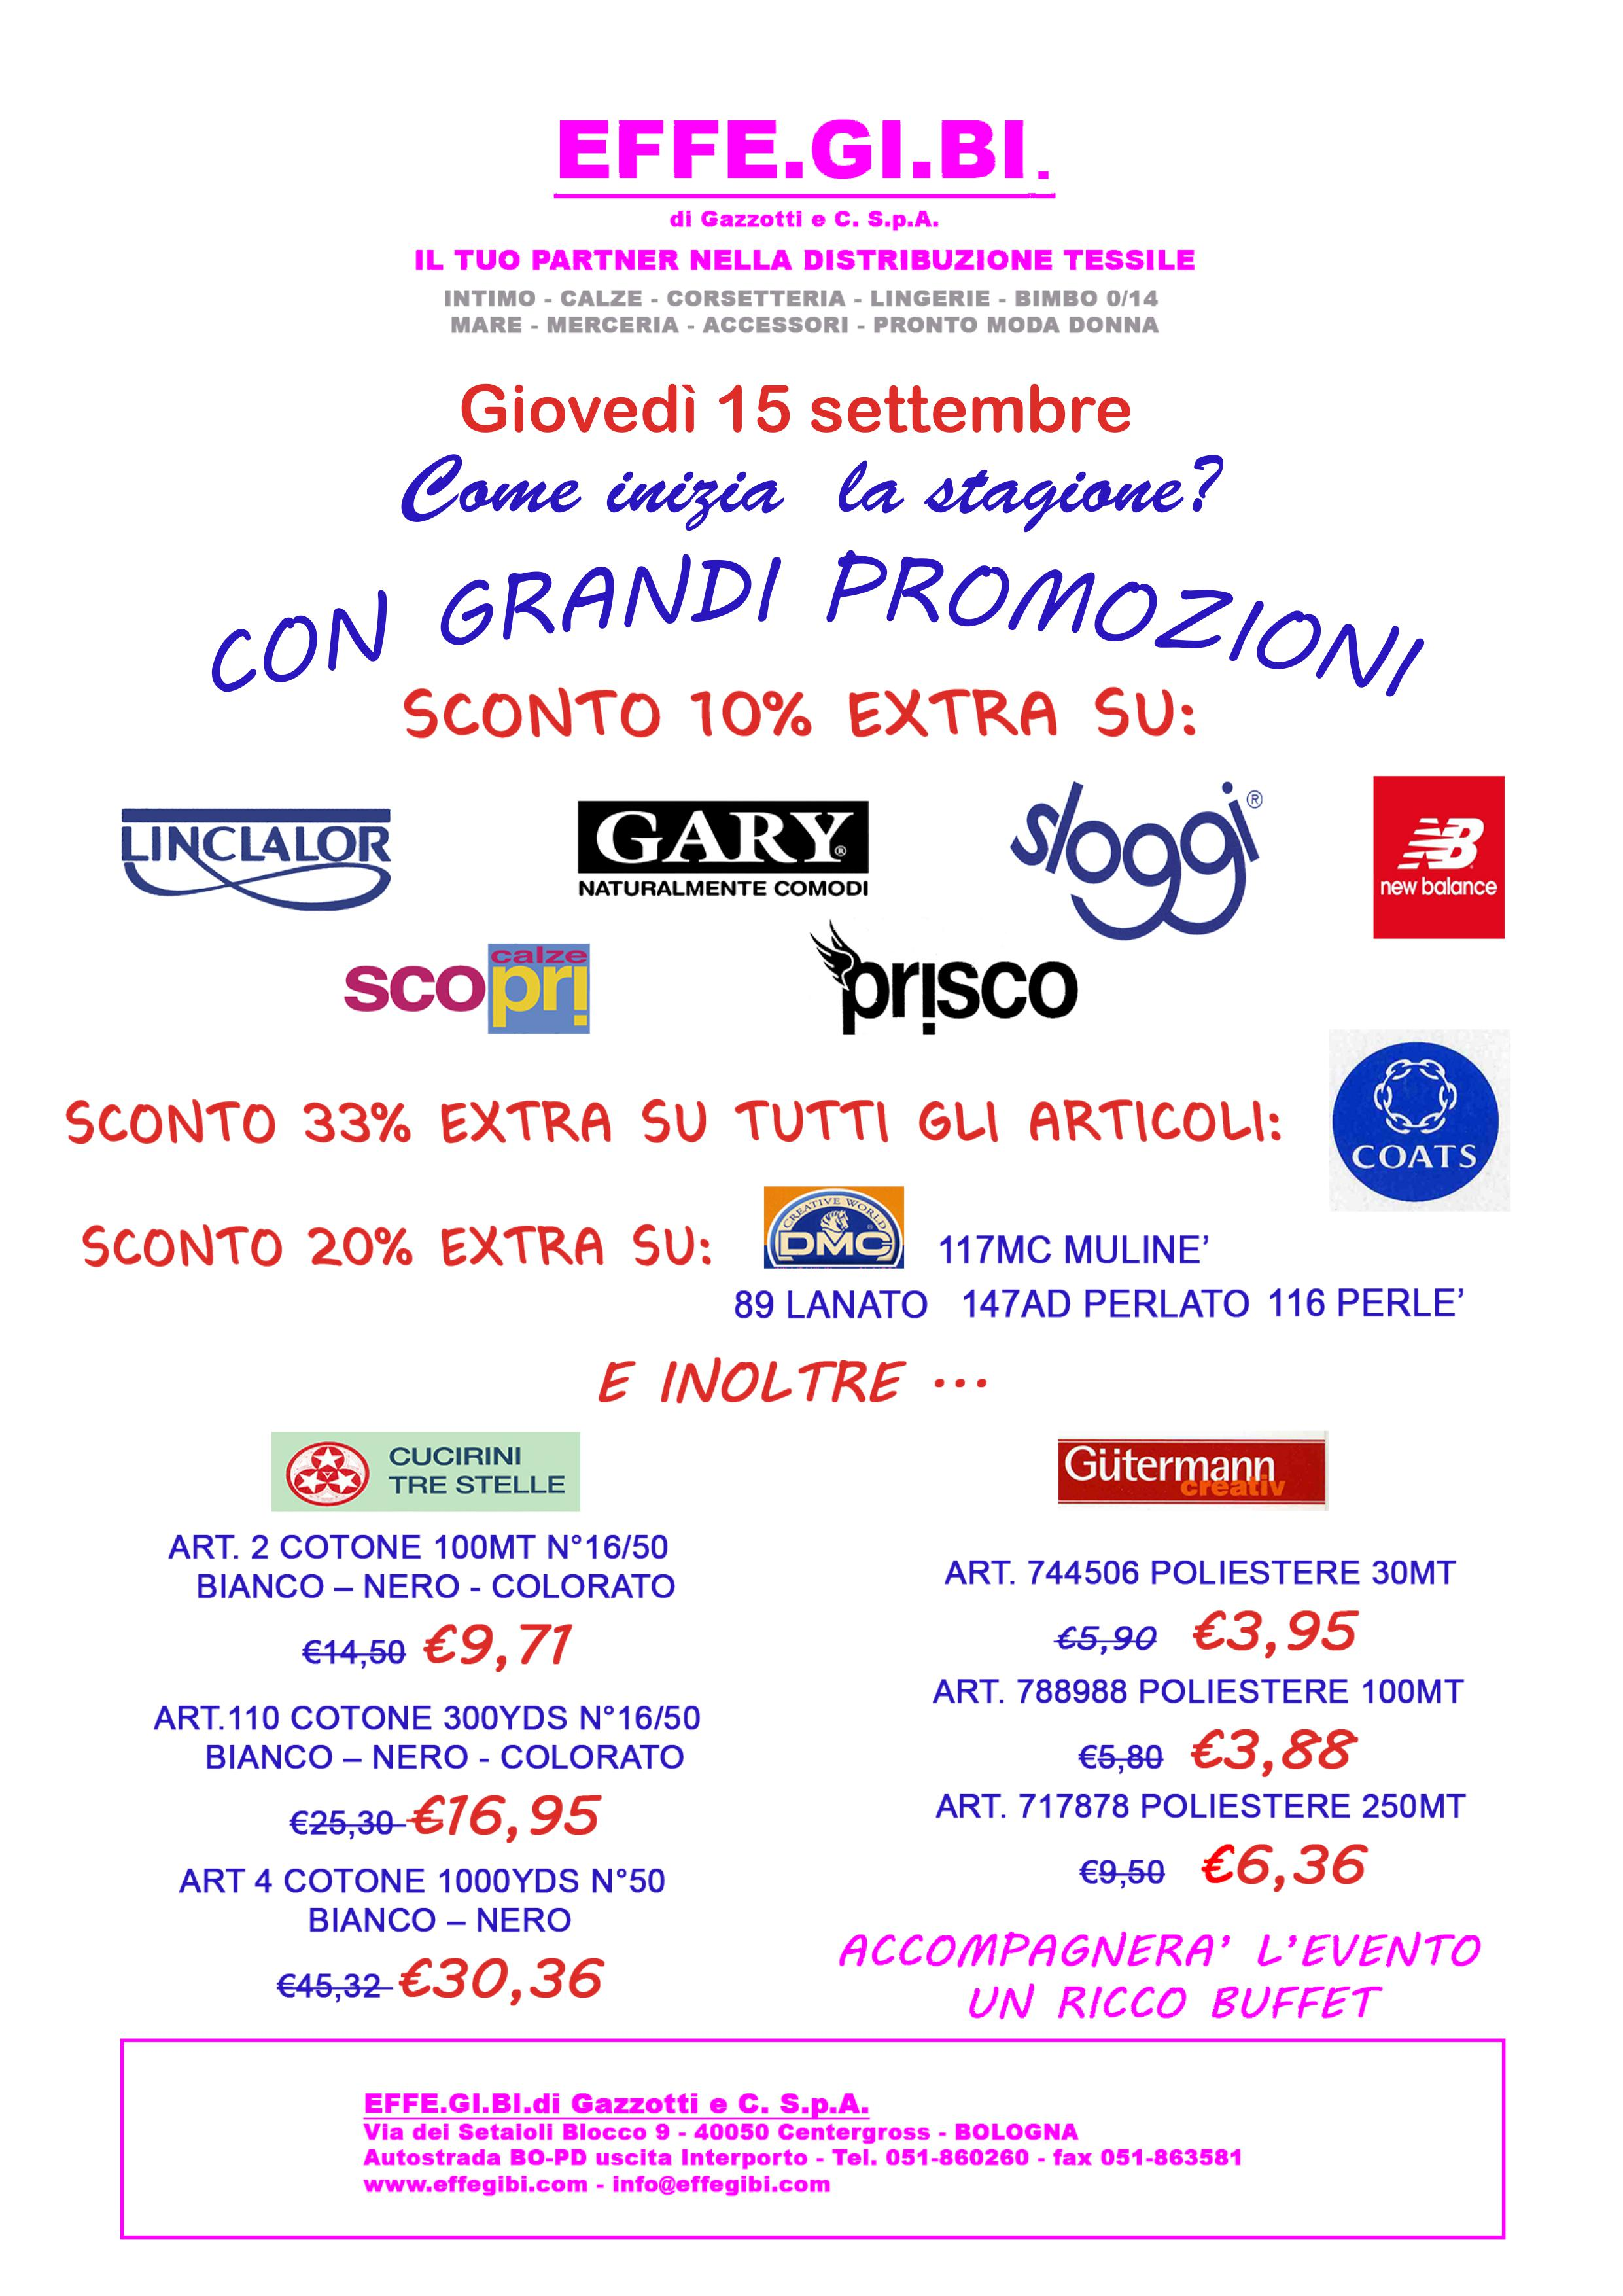 Thursday 15 September, Great deals in our store !